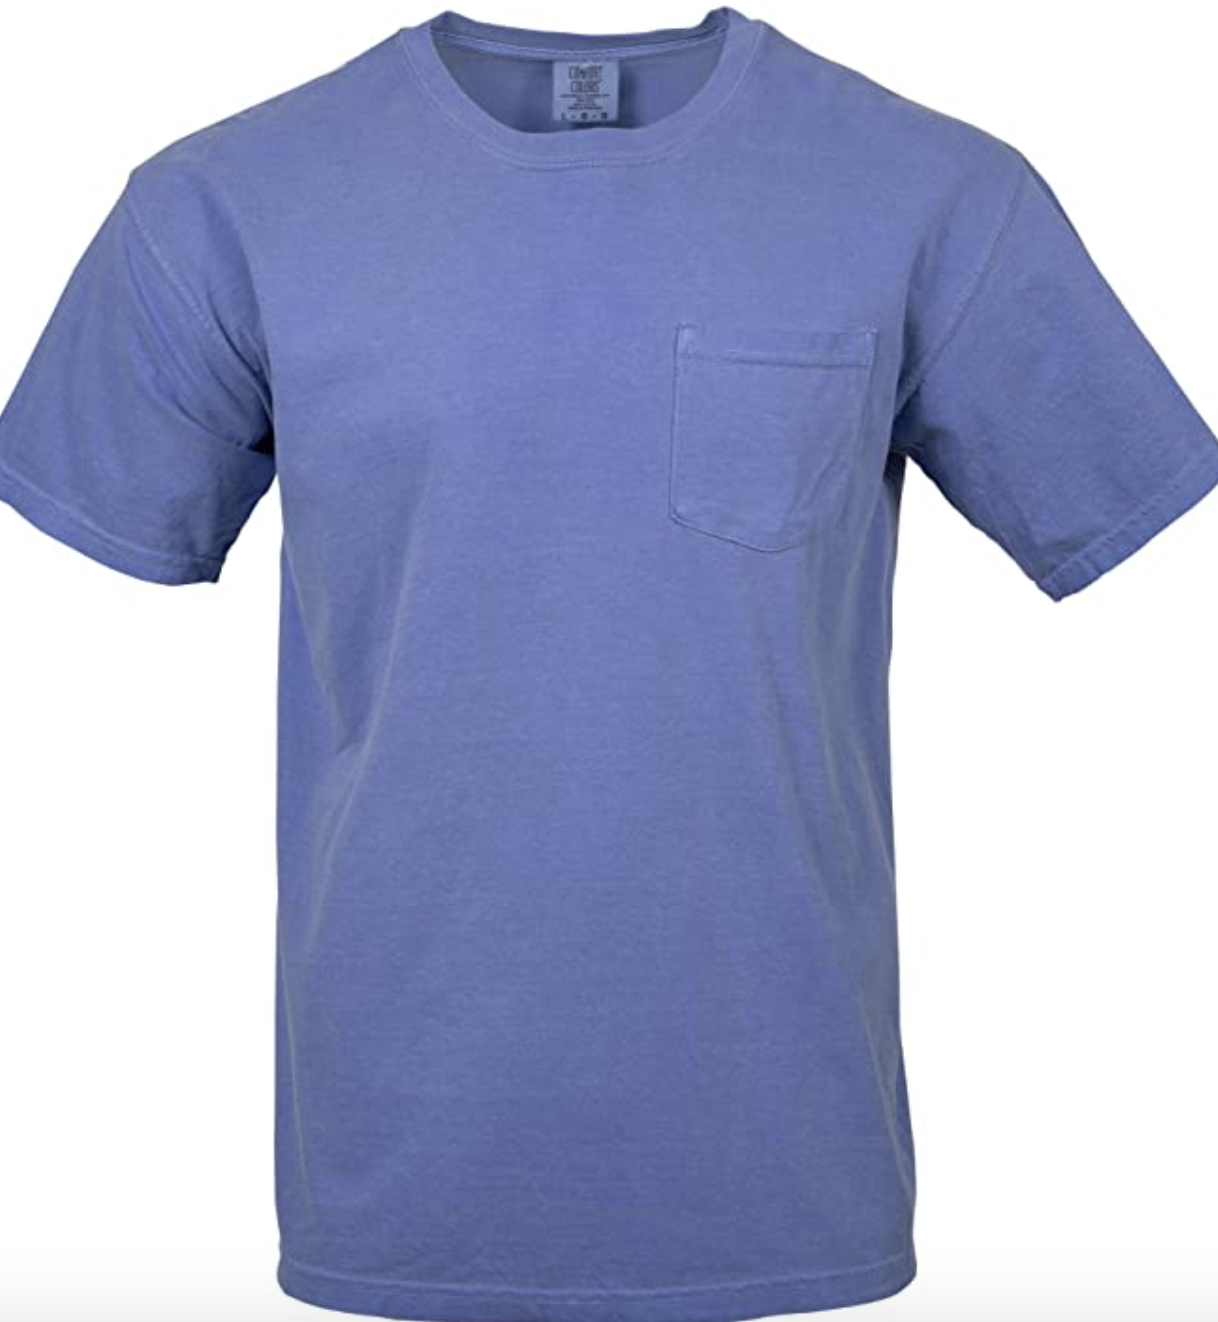 A blue cotton t-shirt